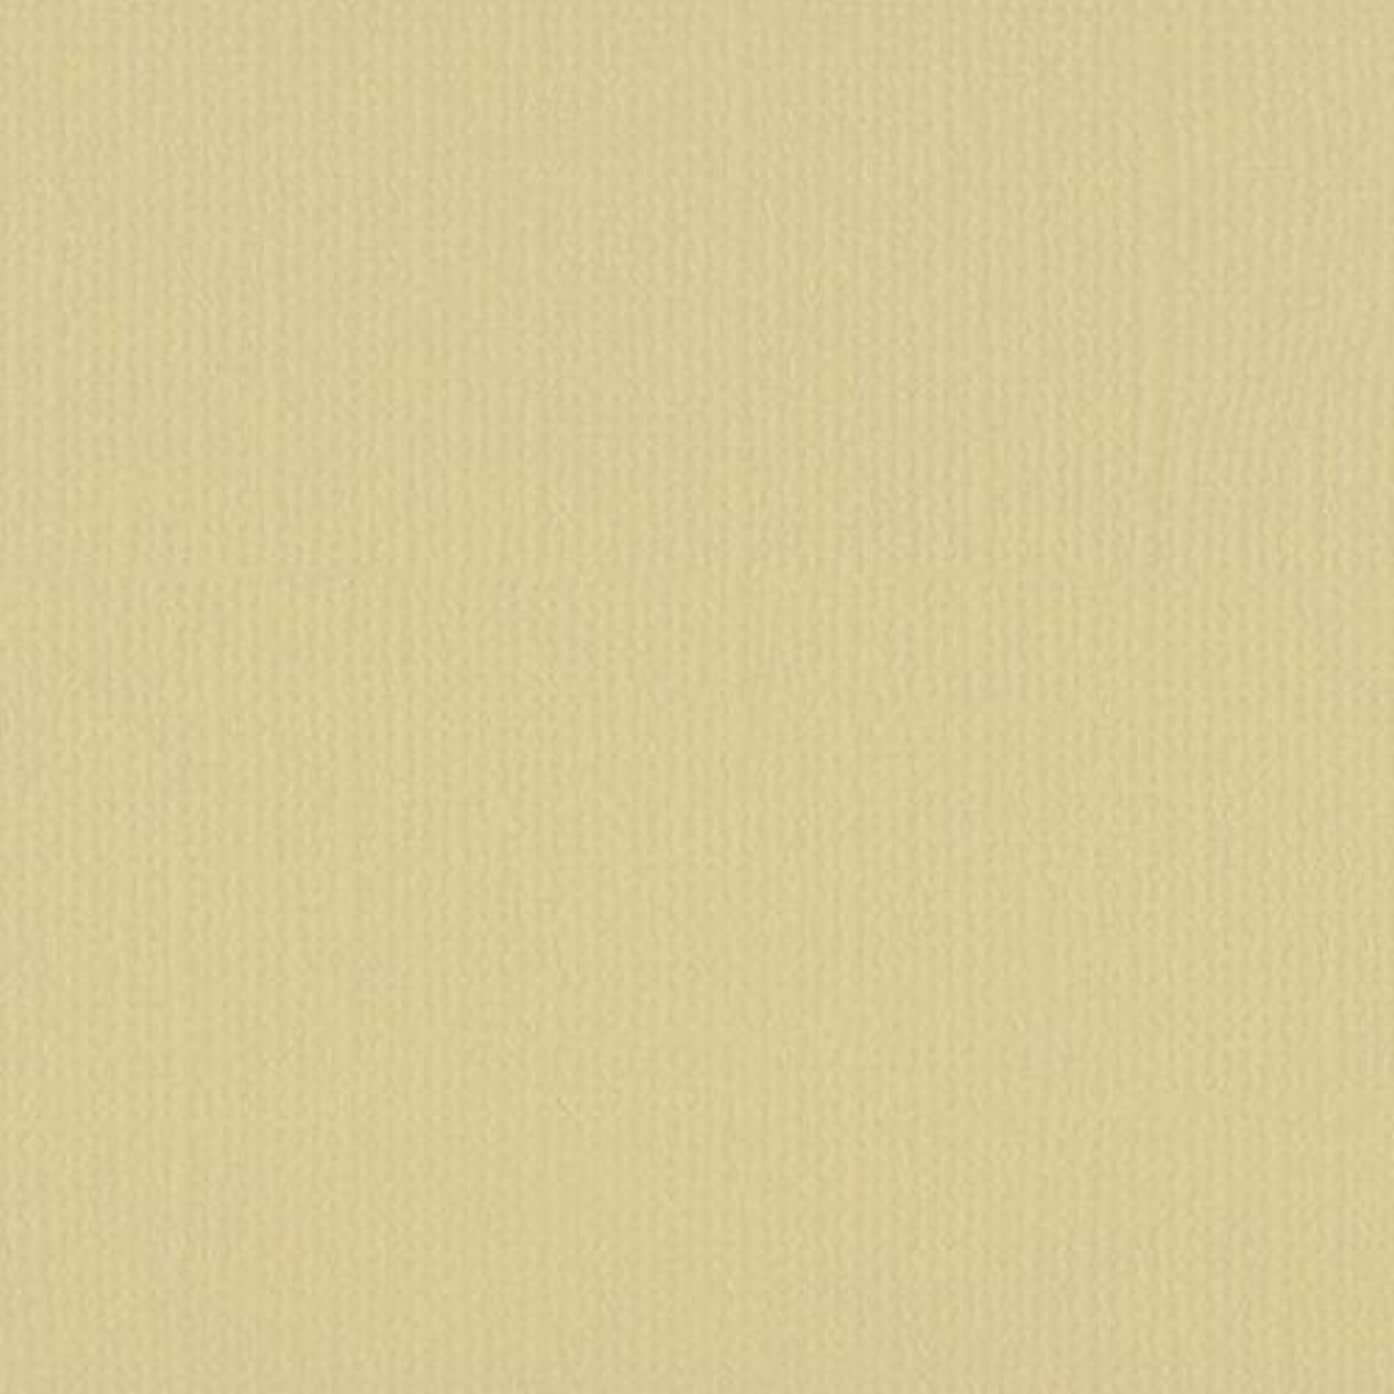 Vaessen Creative A4 Texture Florence Cardstock Canvas, Paper, Pudding, One Size